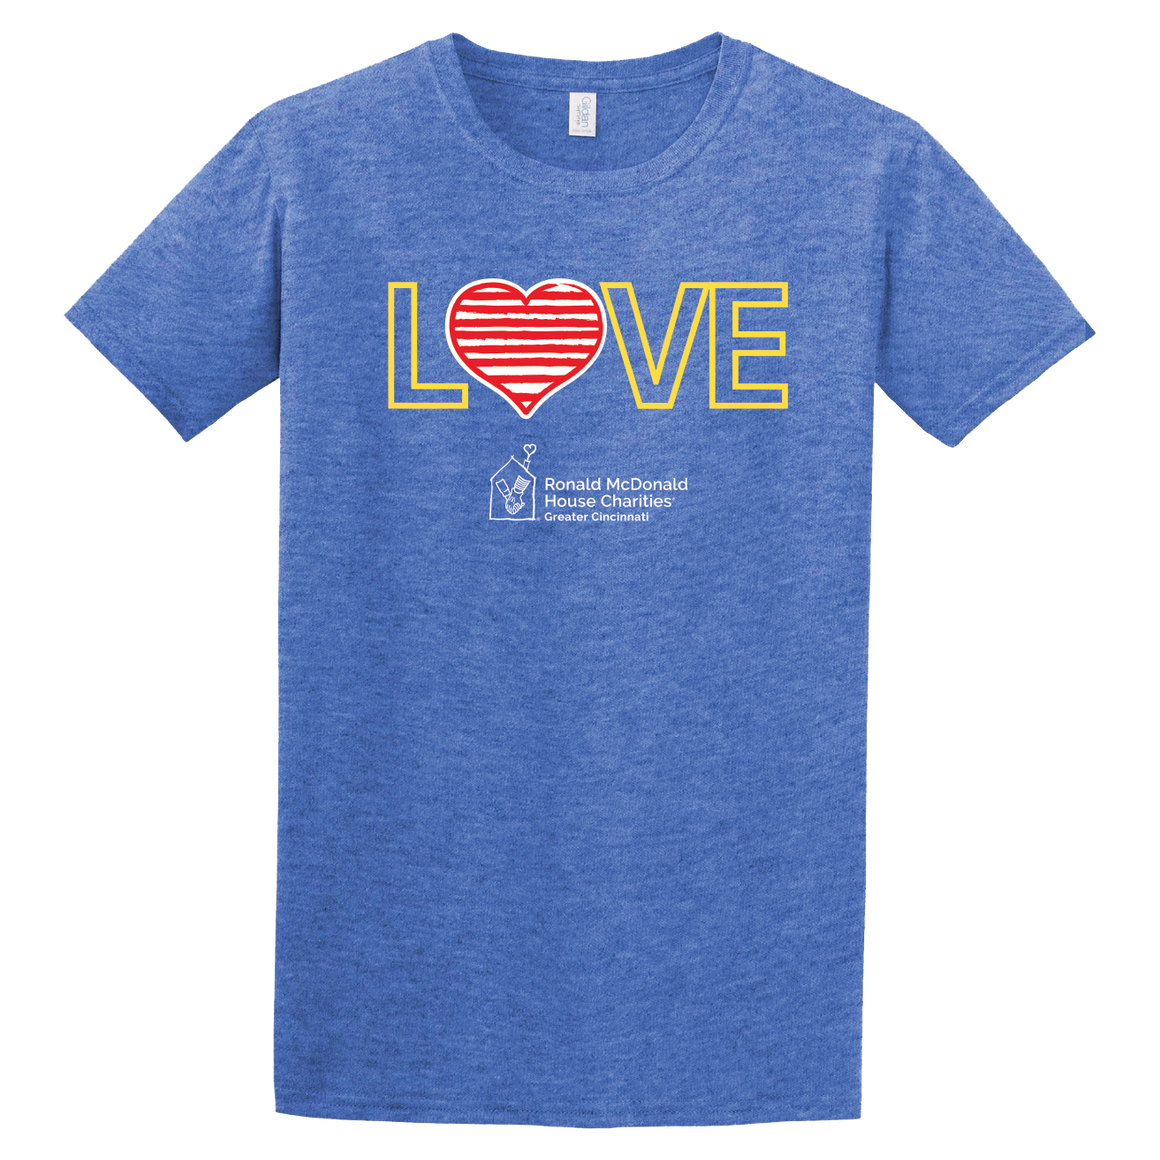 Ronald McDonald House - Love - Cincy Shirts